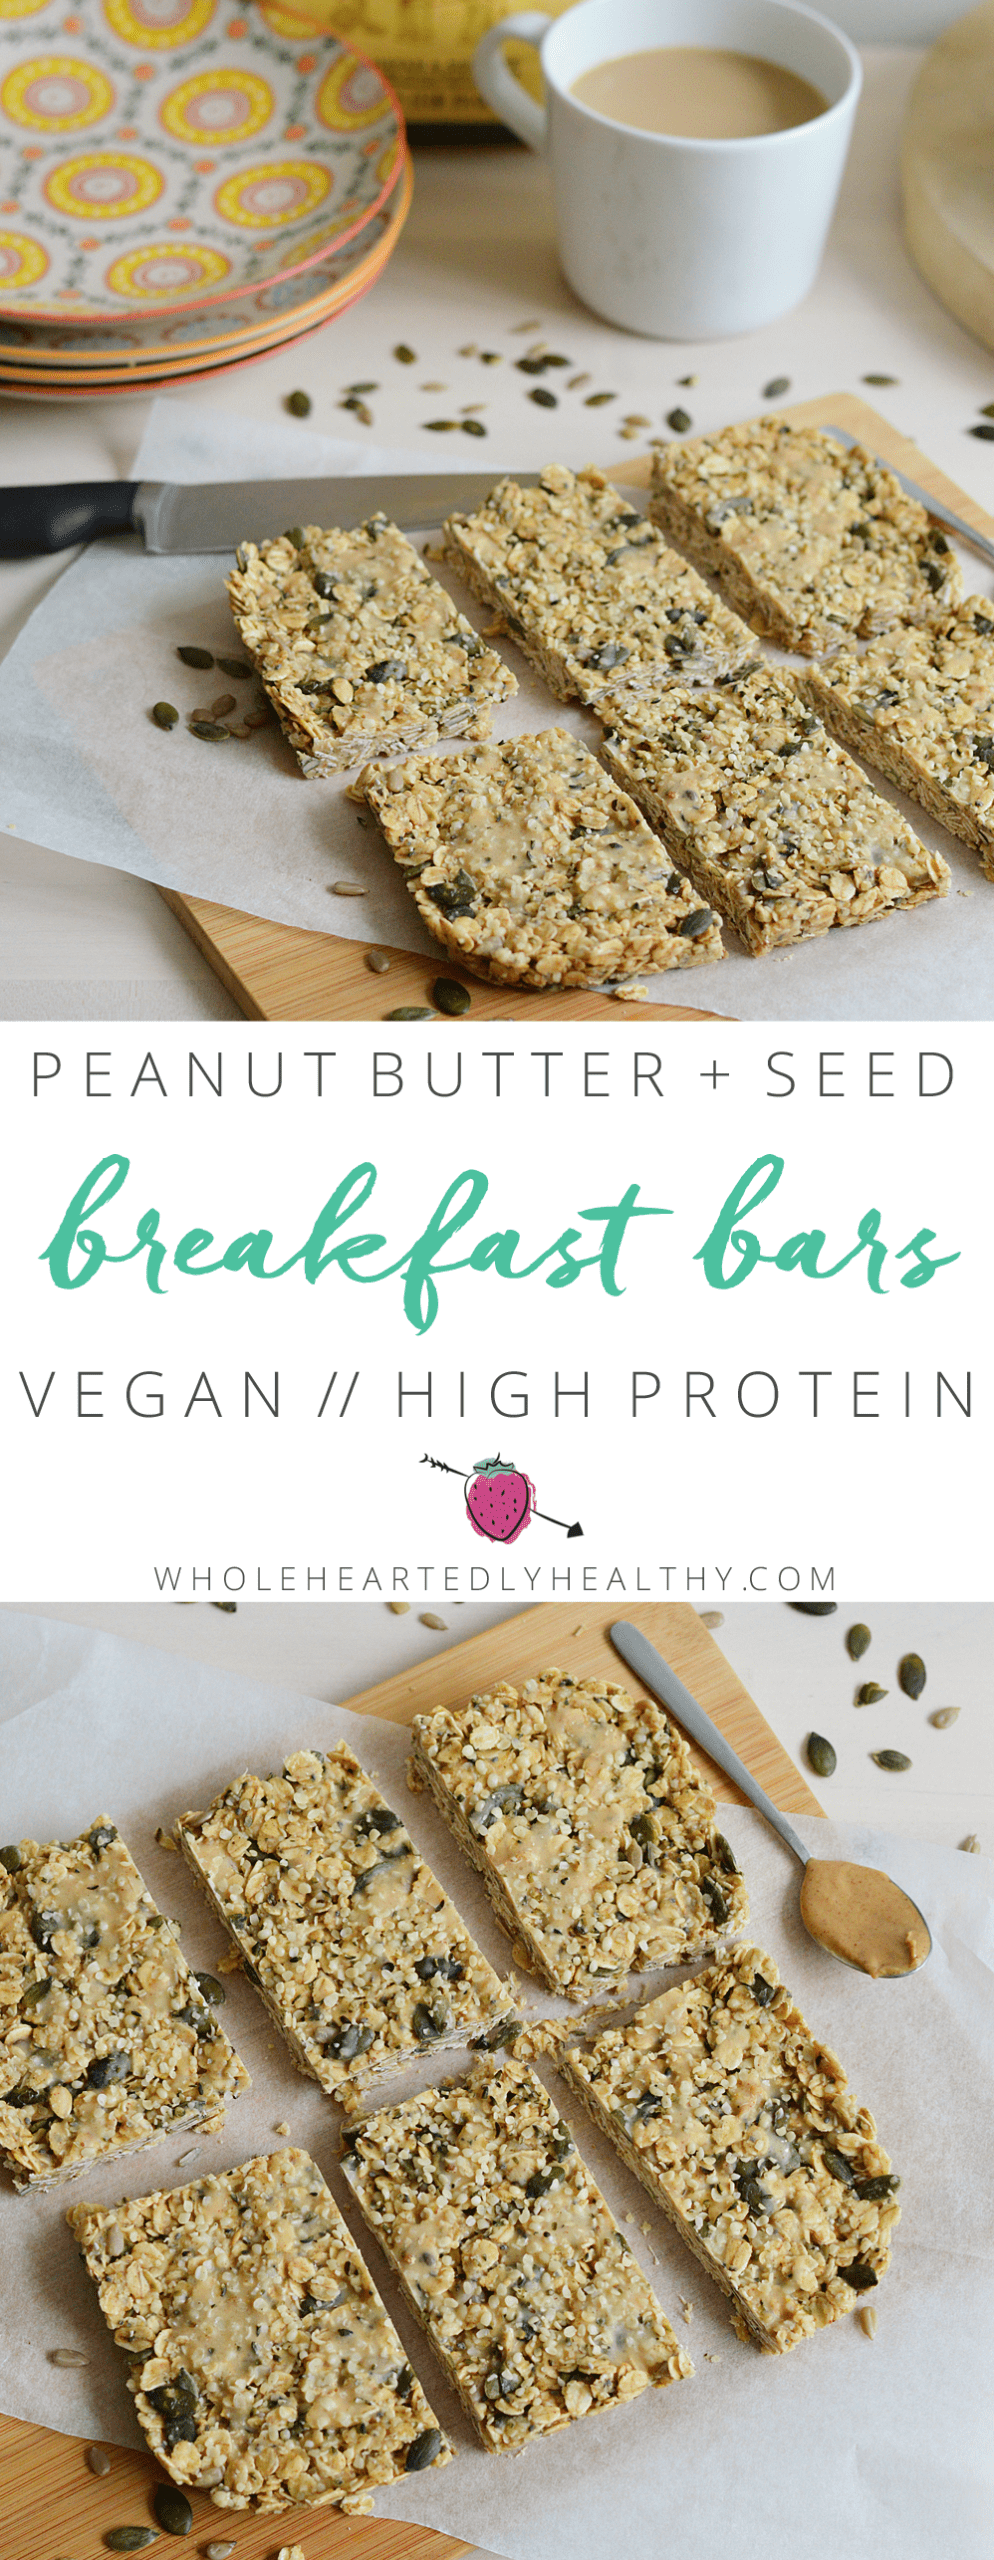 Peanut protein breakfast bars